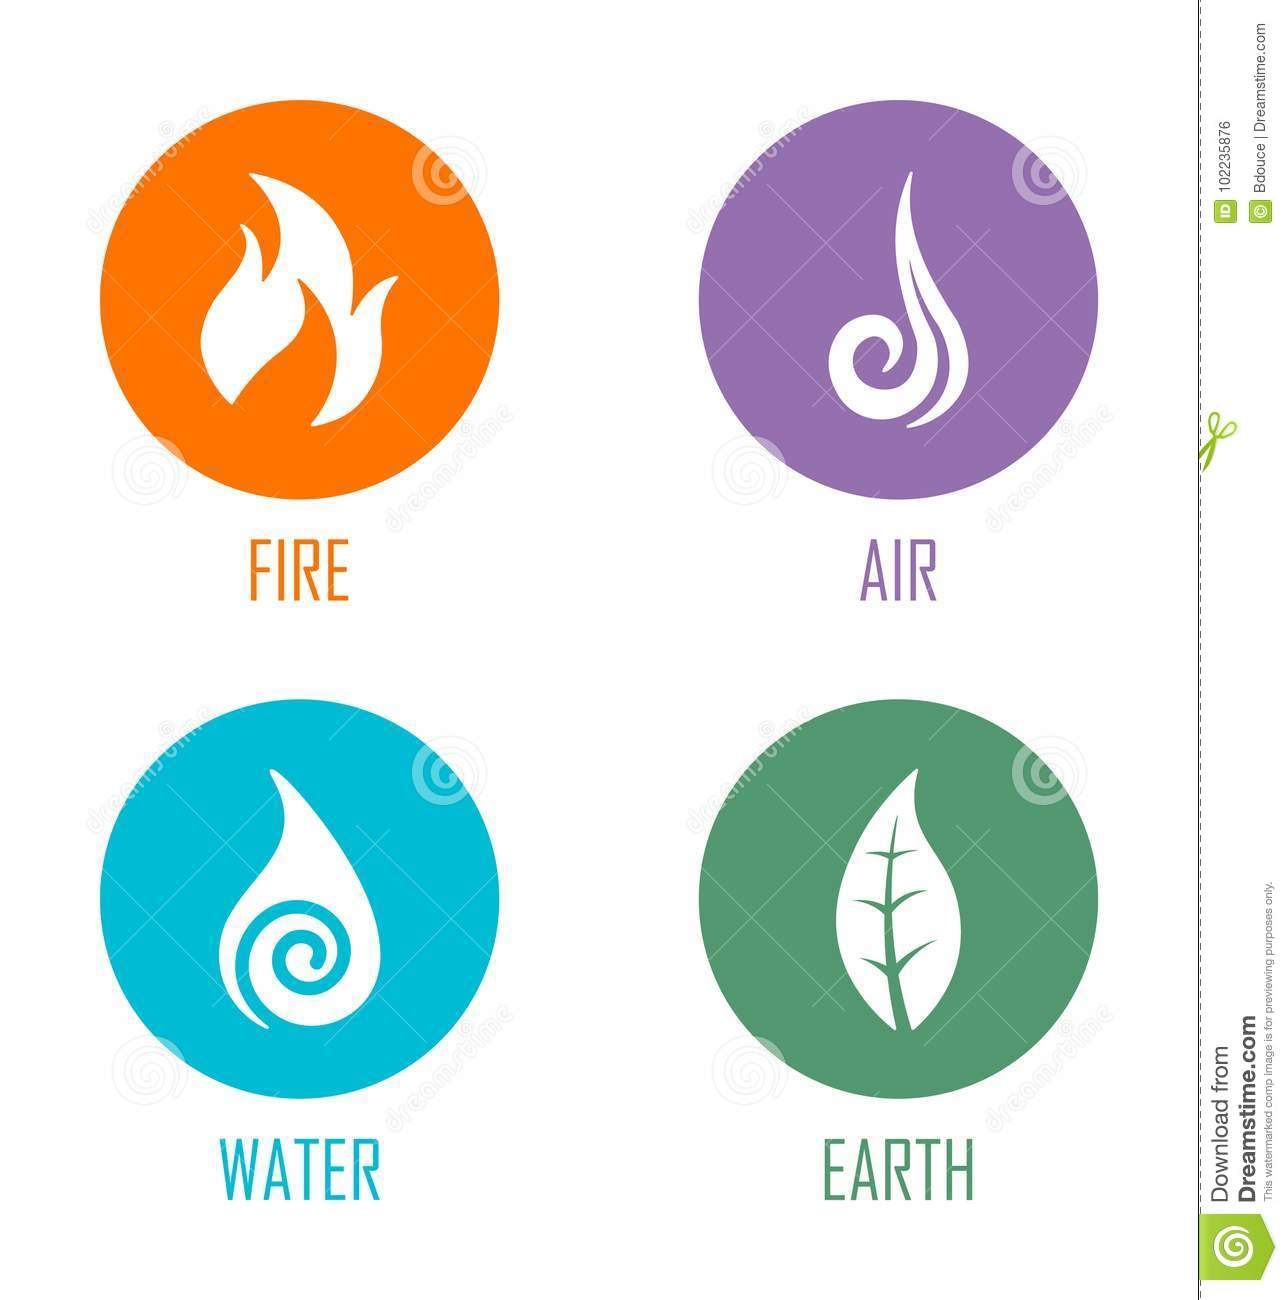 Abstract Four Elements Fire Air Water Earth Symbols Placed On